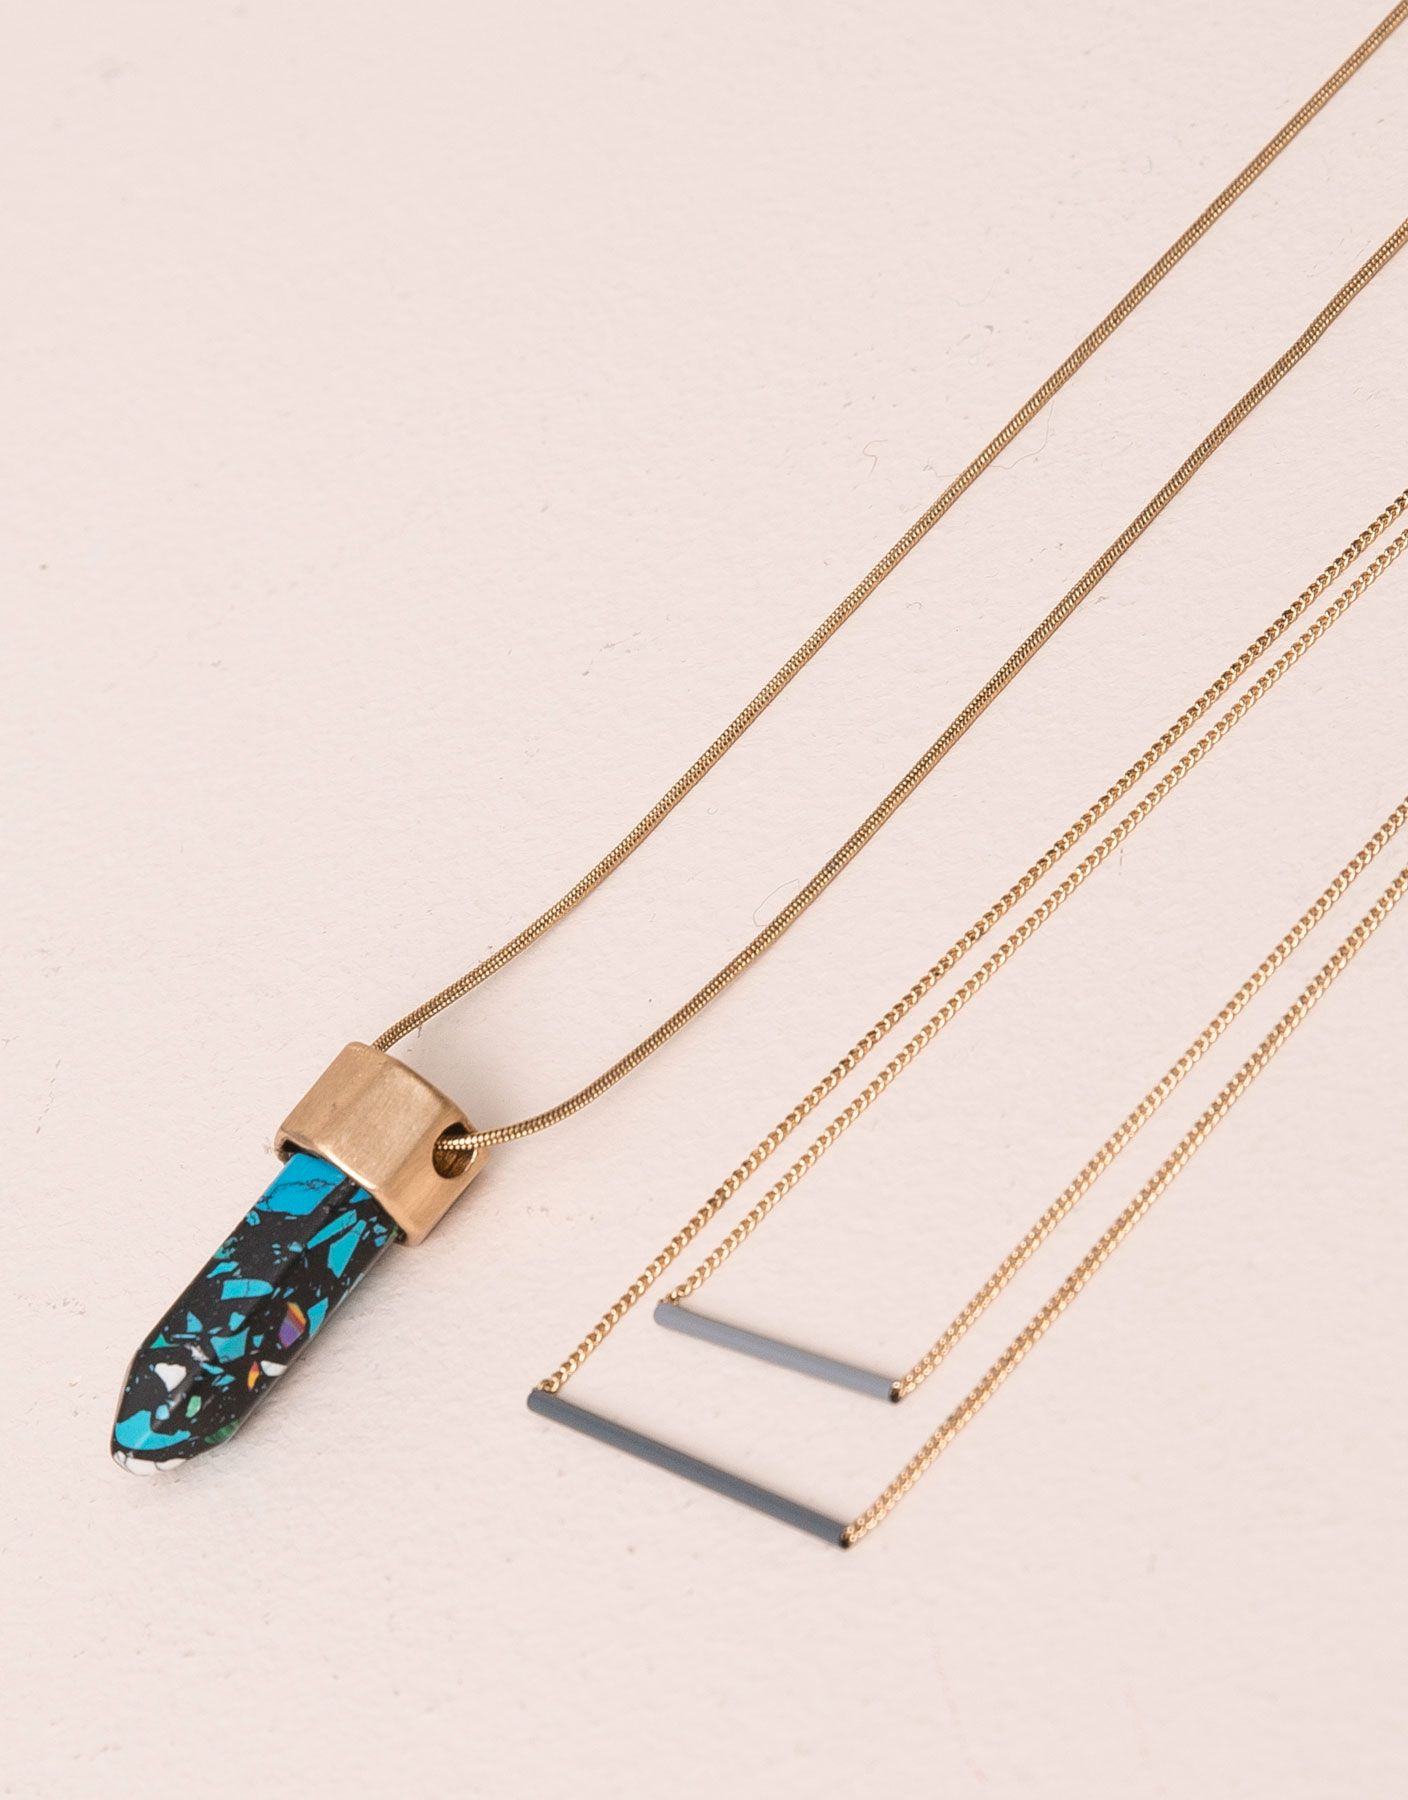 :2-PACK OF MULTICOLOURED GEMSTONE NECKLACES